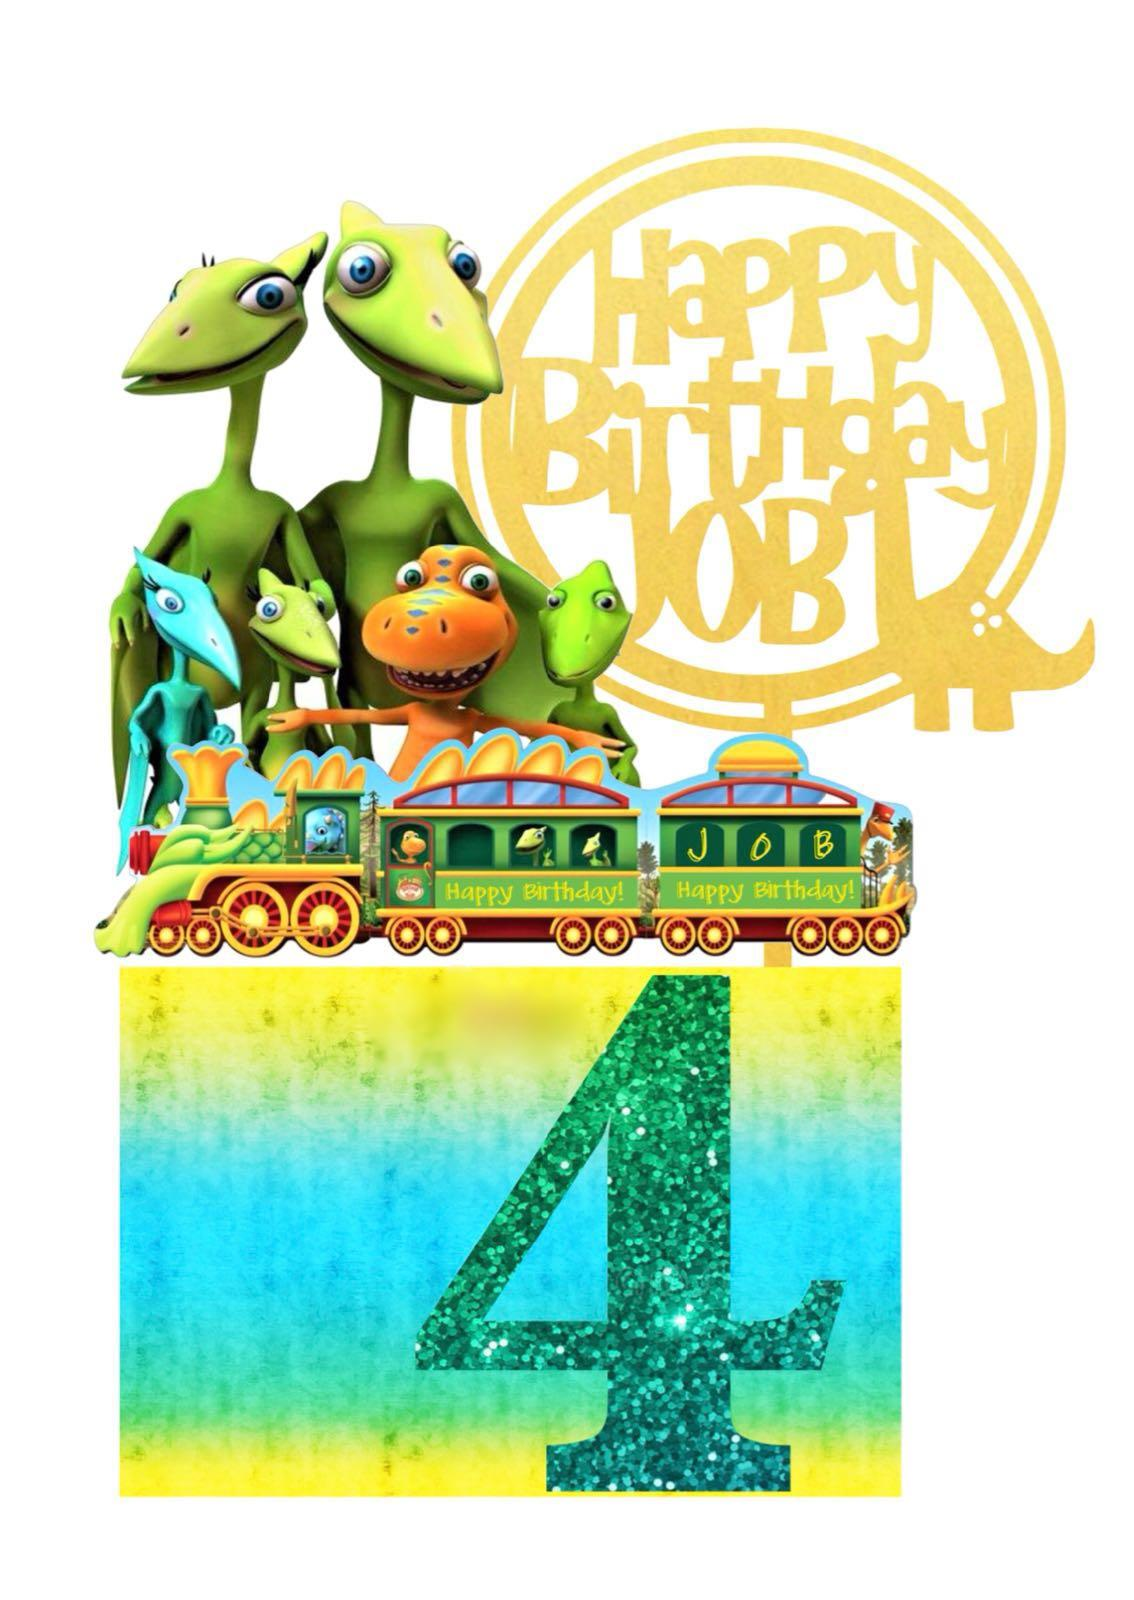 Amazing Dinosaur Train Birthday Cake Topper Set Design Craft Handmade Funny Birthday Cards Online Alyptdamsfinfo